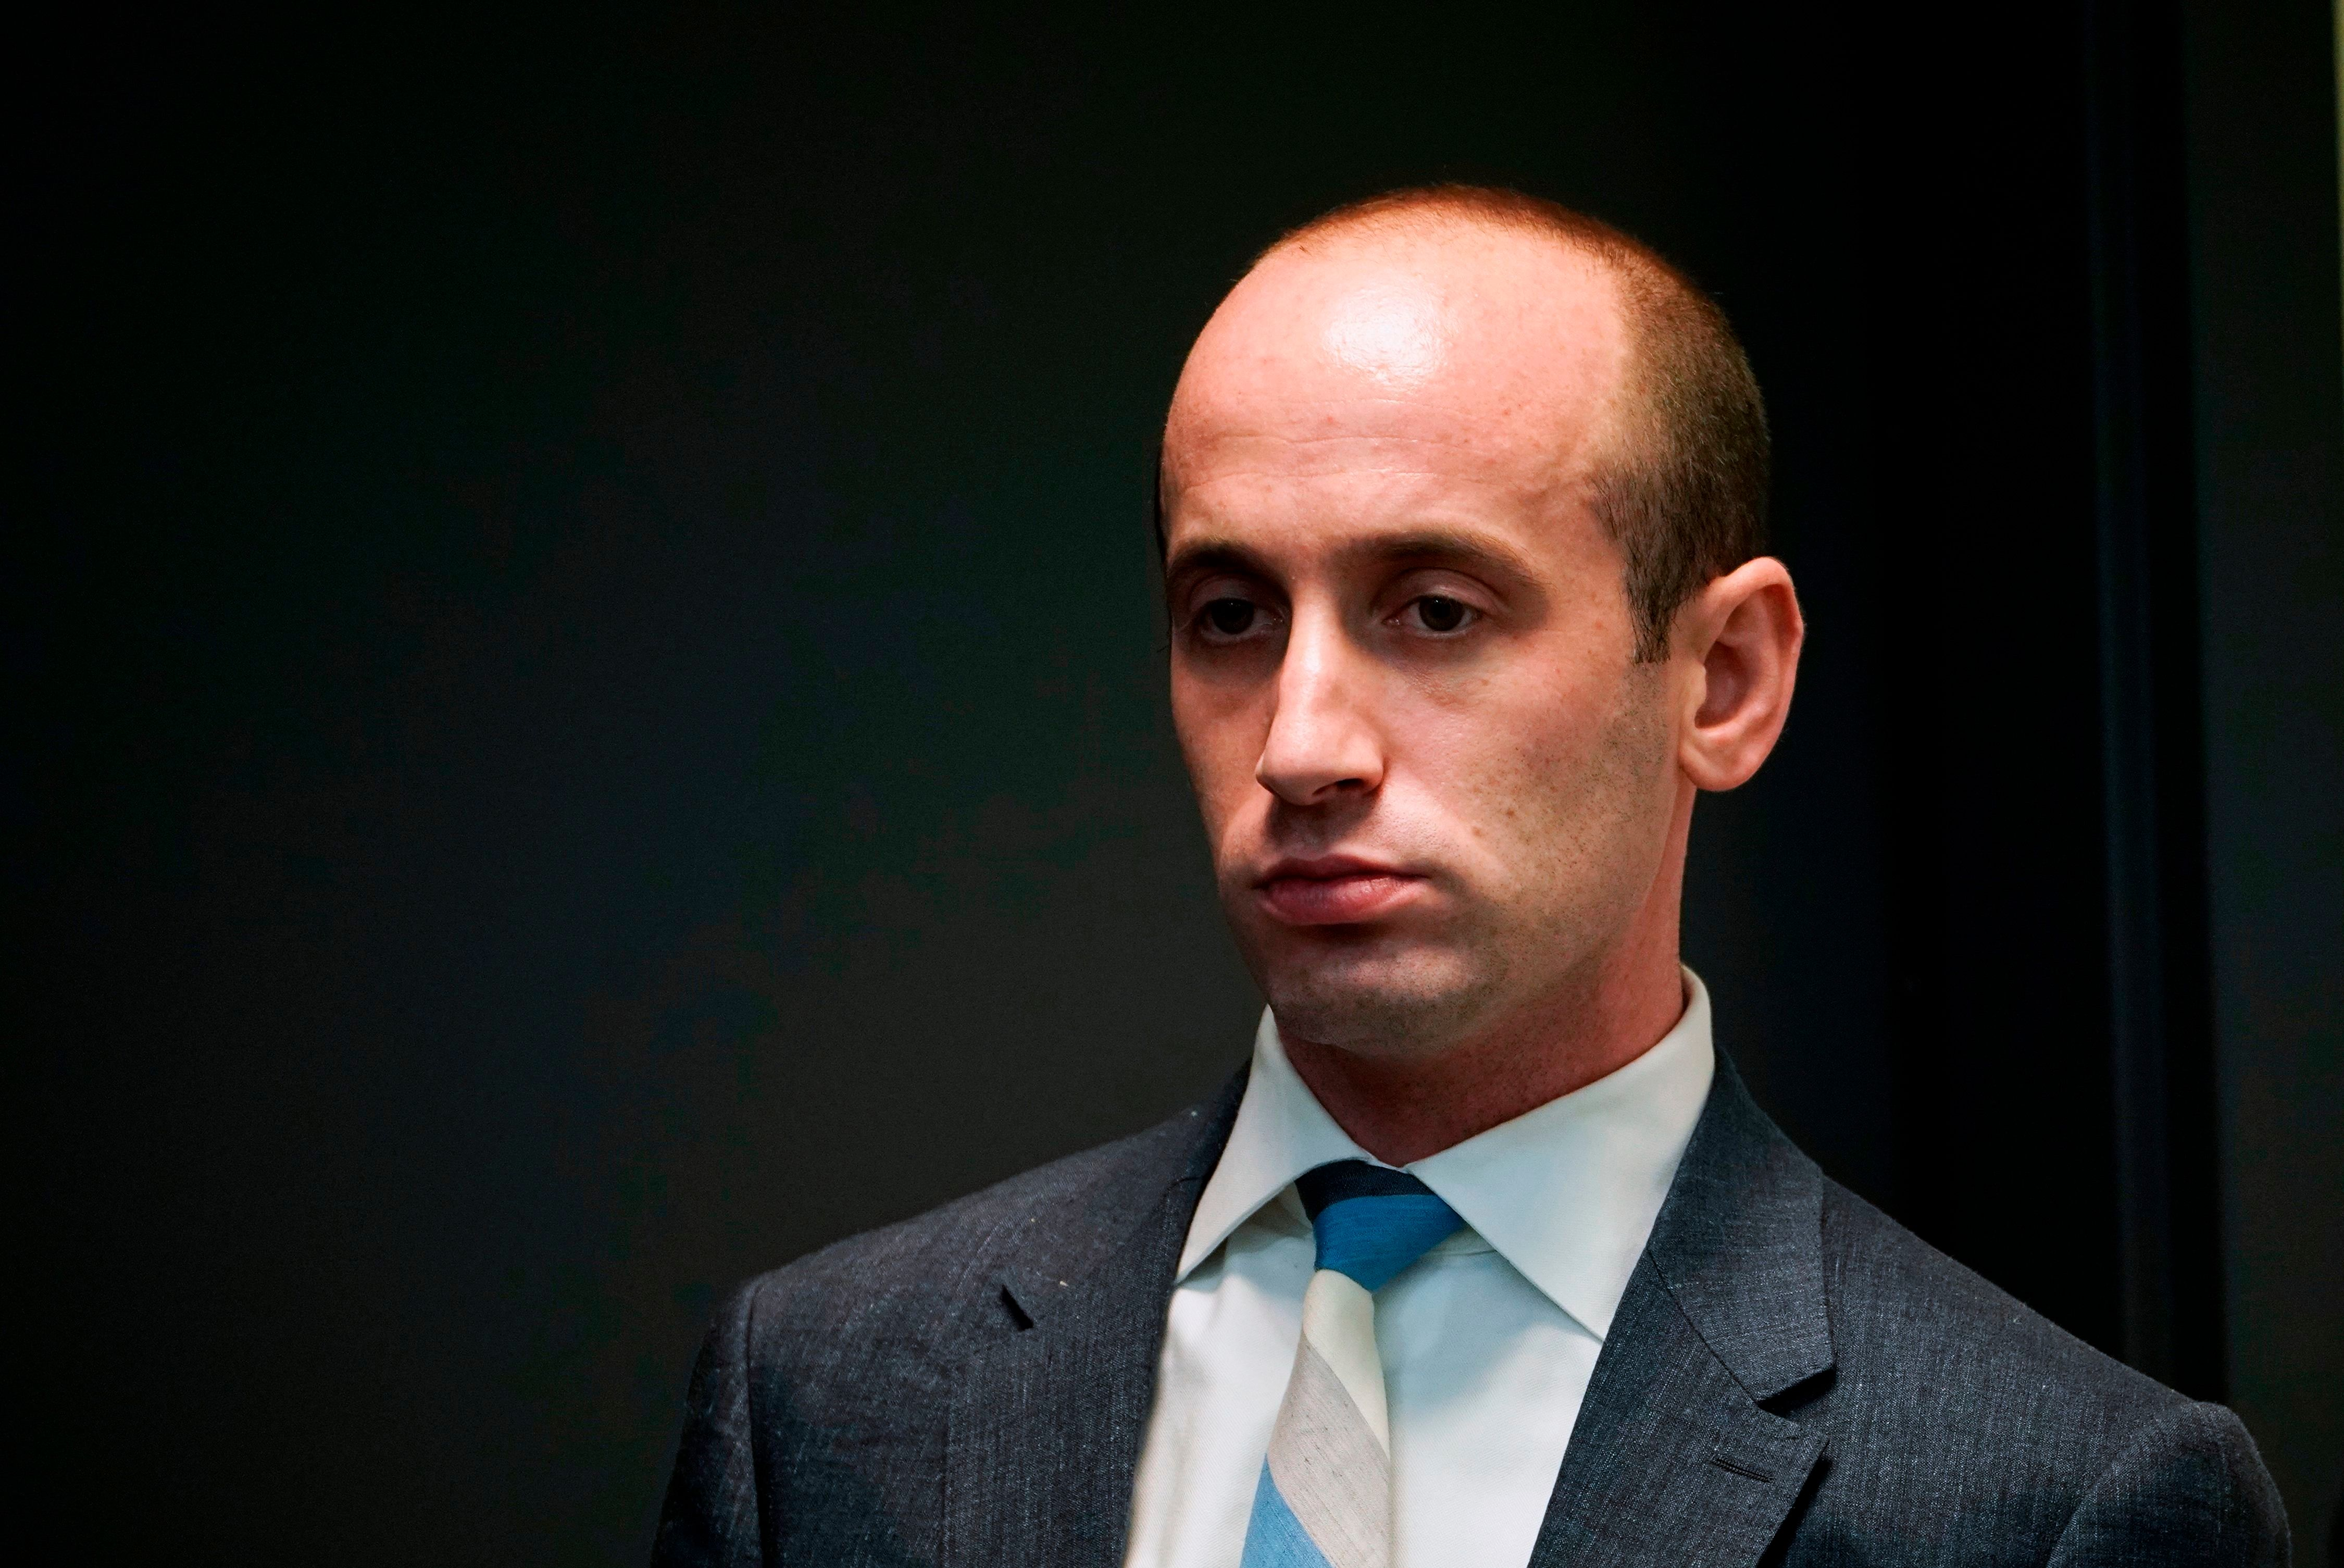 Senior Advisor to the president Stephen Miller is seen during an immigration event with US President Donald Trump in the South Court Auditorium, next to the White House, on June 22, 2018 in Washington, DC. (Photo by MANDEL NGAN / AFP)        (Photo credit should read MANDEL NGAN/AFP/Getty Images)